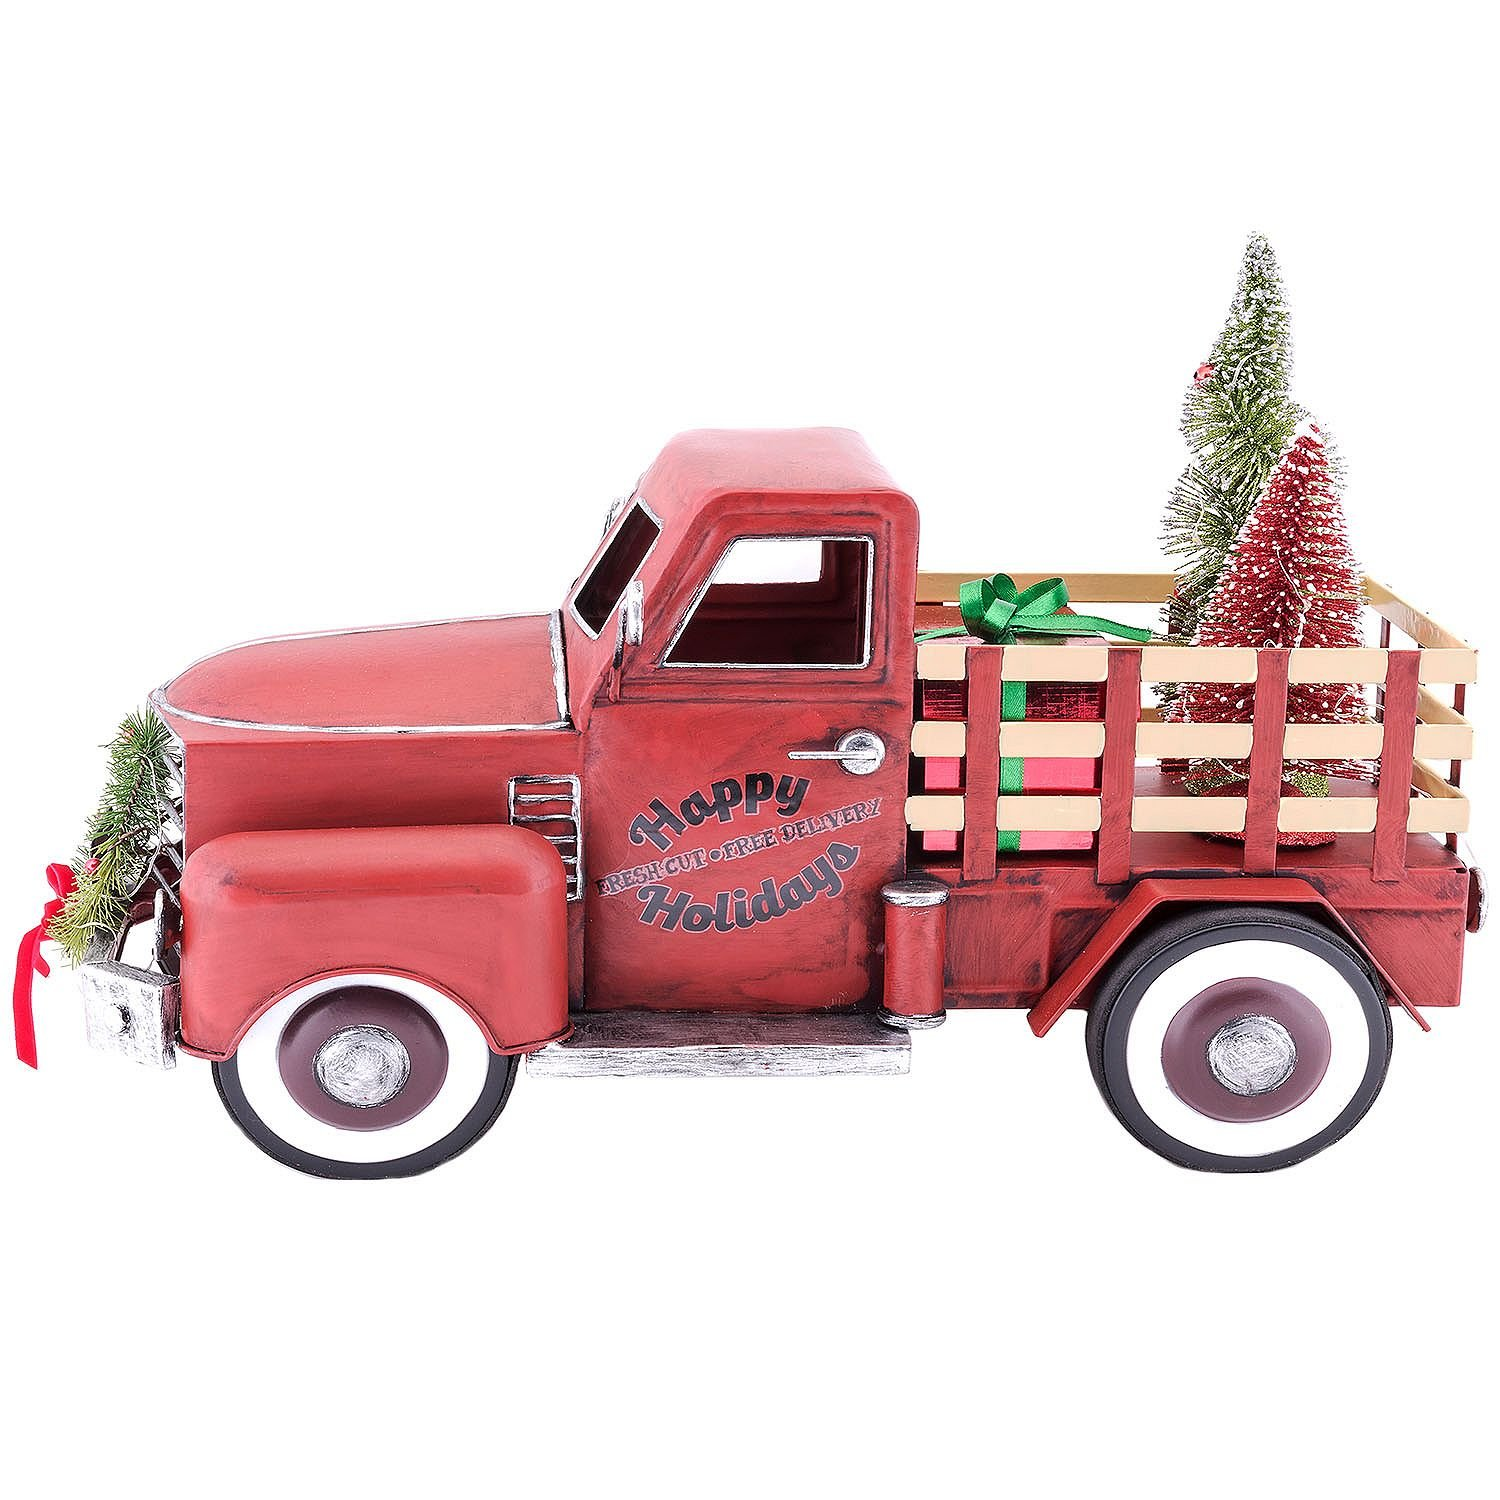 Vintage Red Truck Christmas Decor.Pre Lit Led Happy Holiday S Christmas Tree Vintage Metal Truck Decor